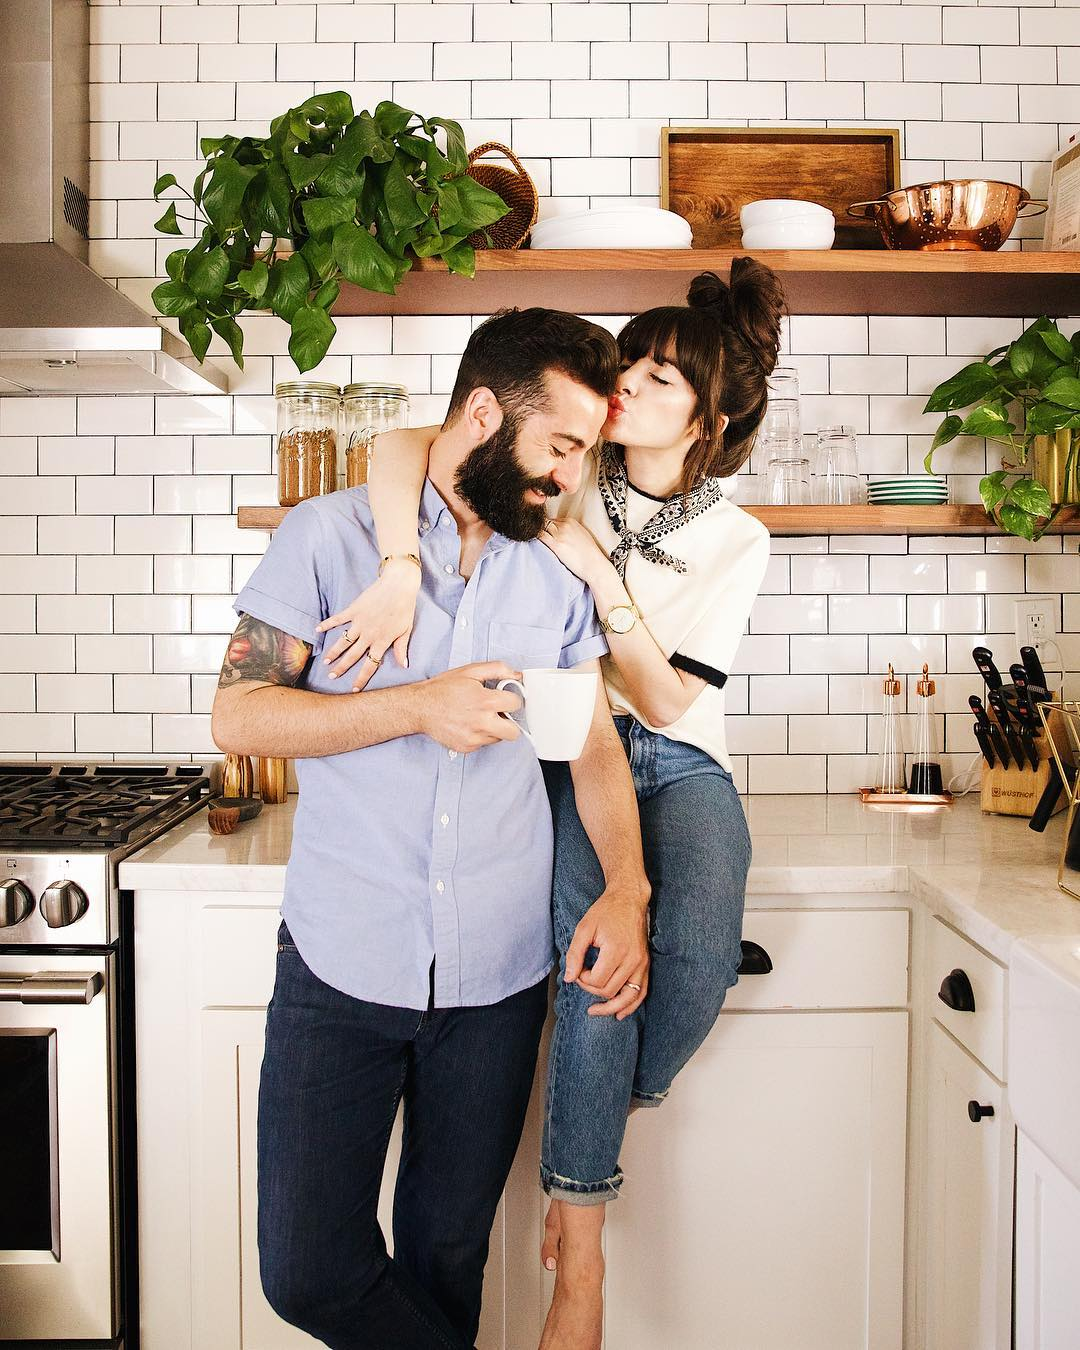 newdarling cooking together